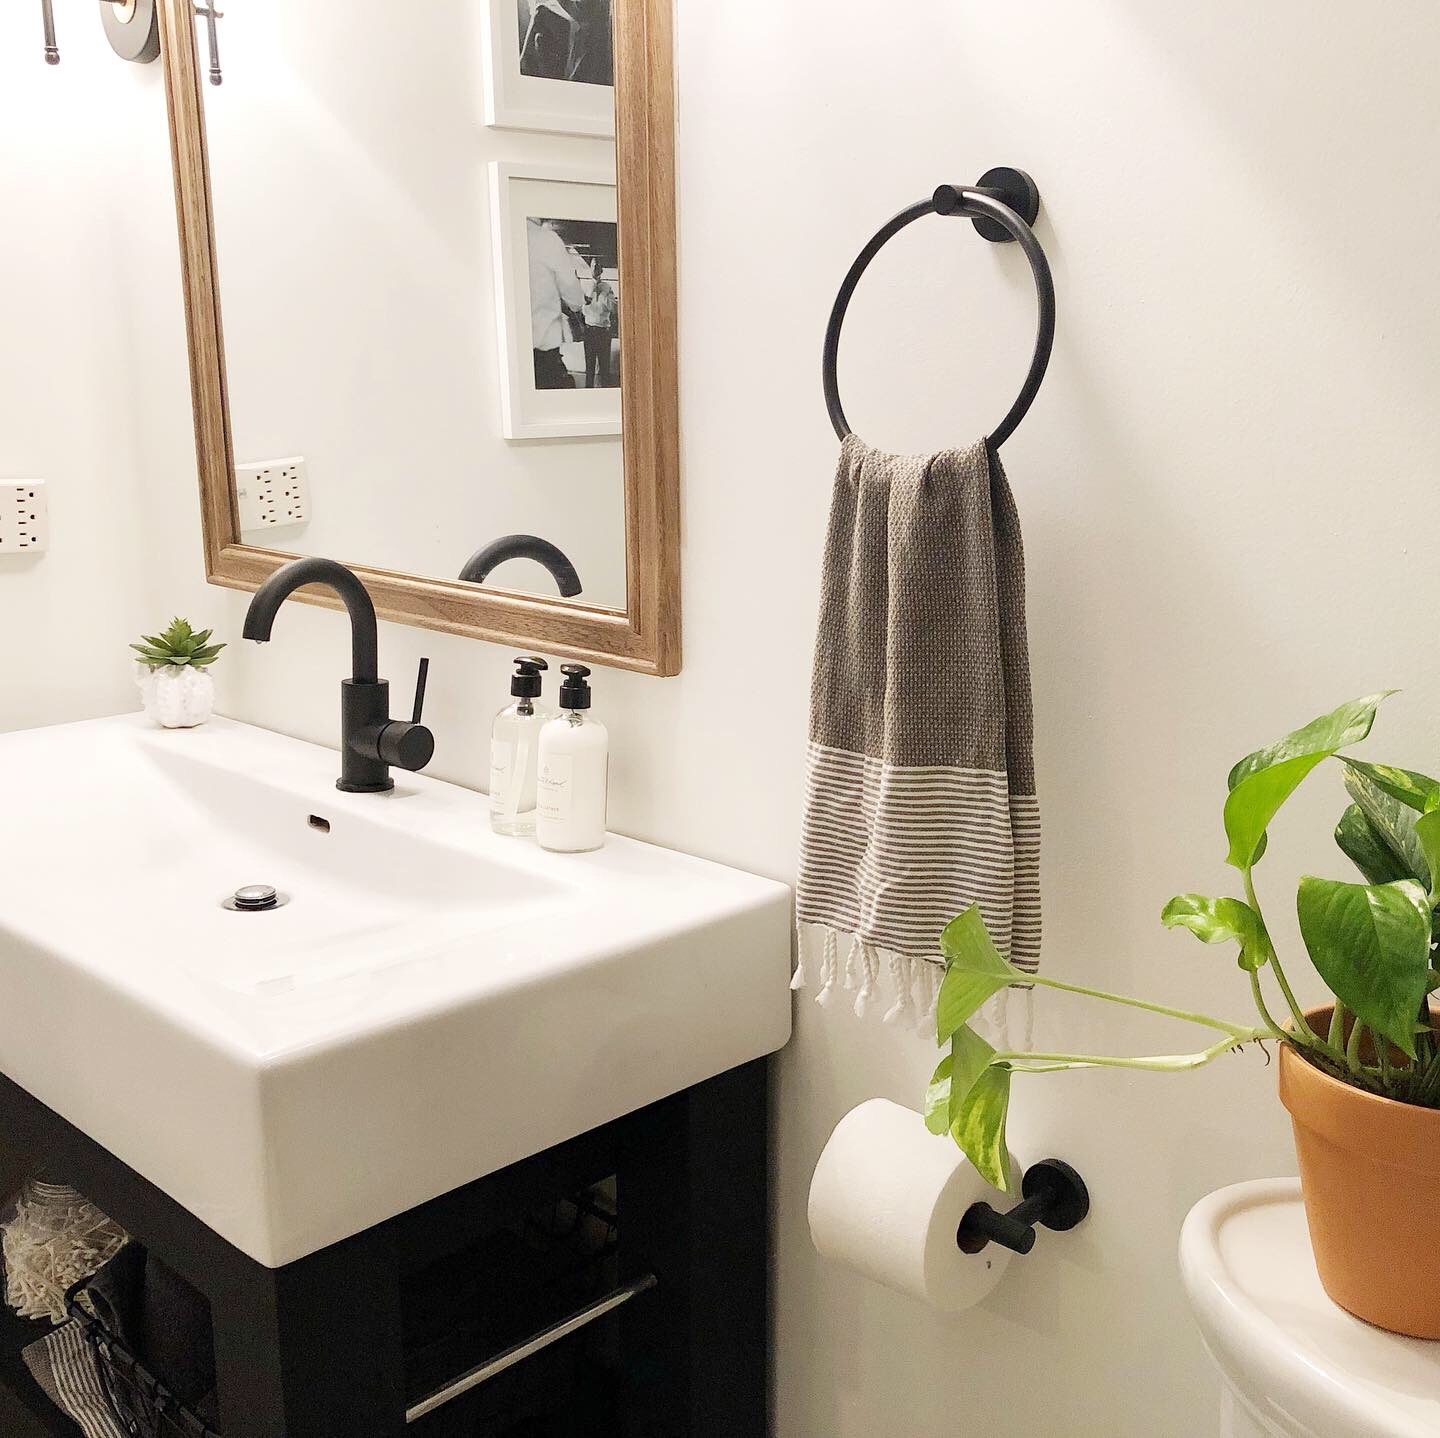 The black hardware and some greenery really makes a difference!